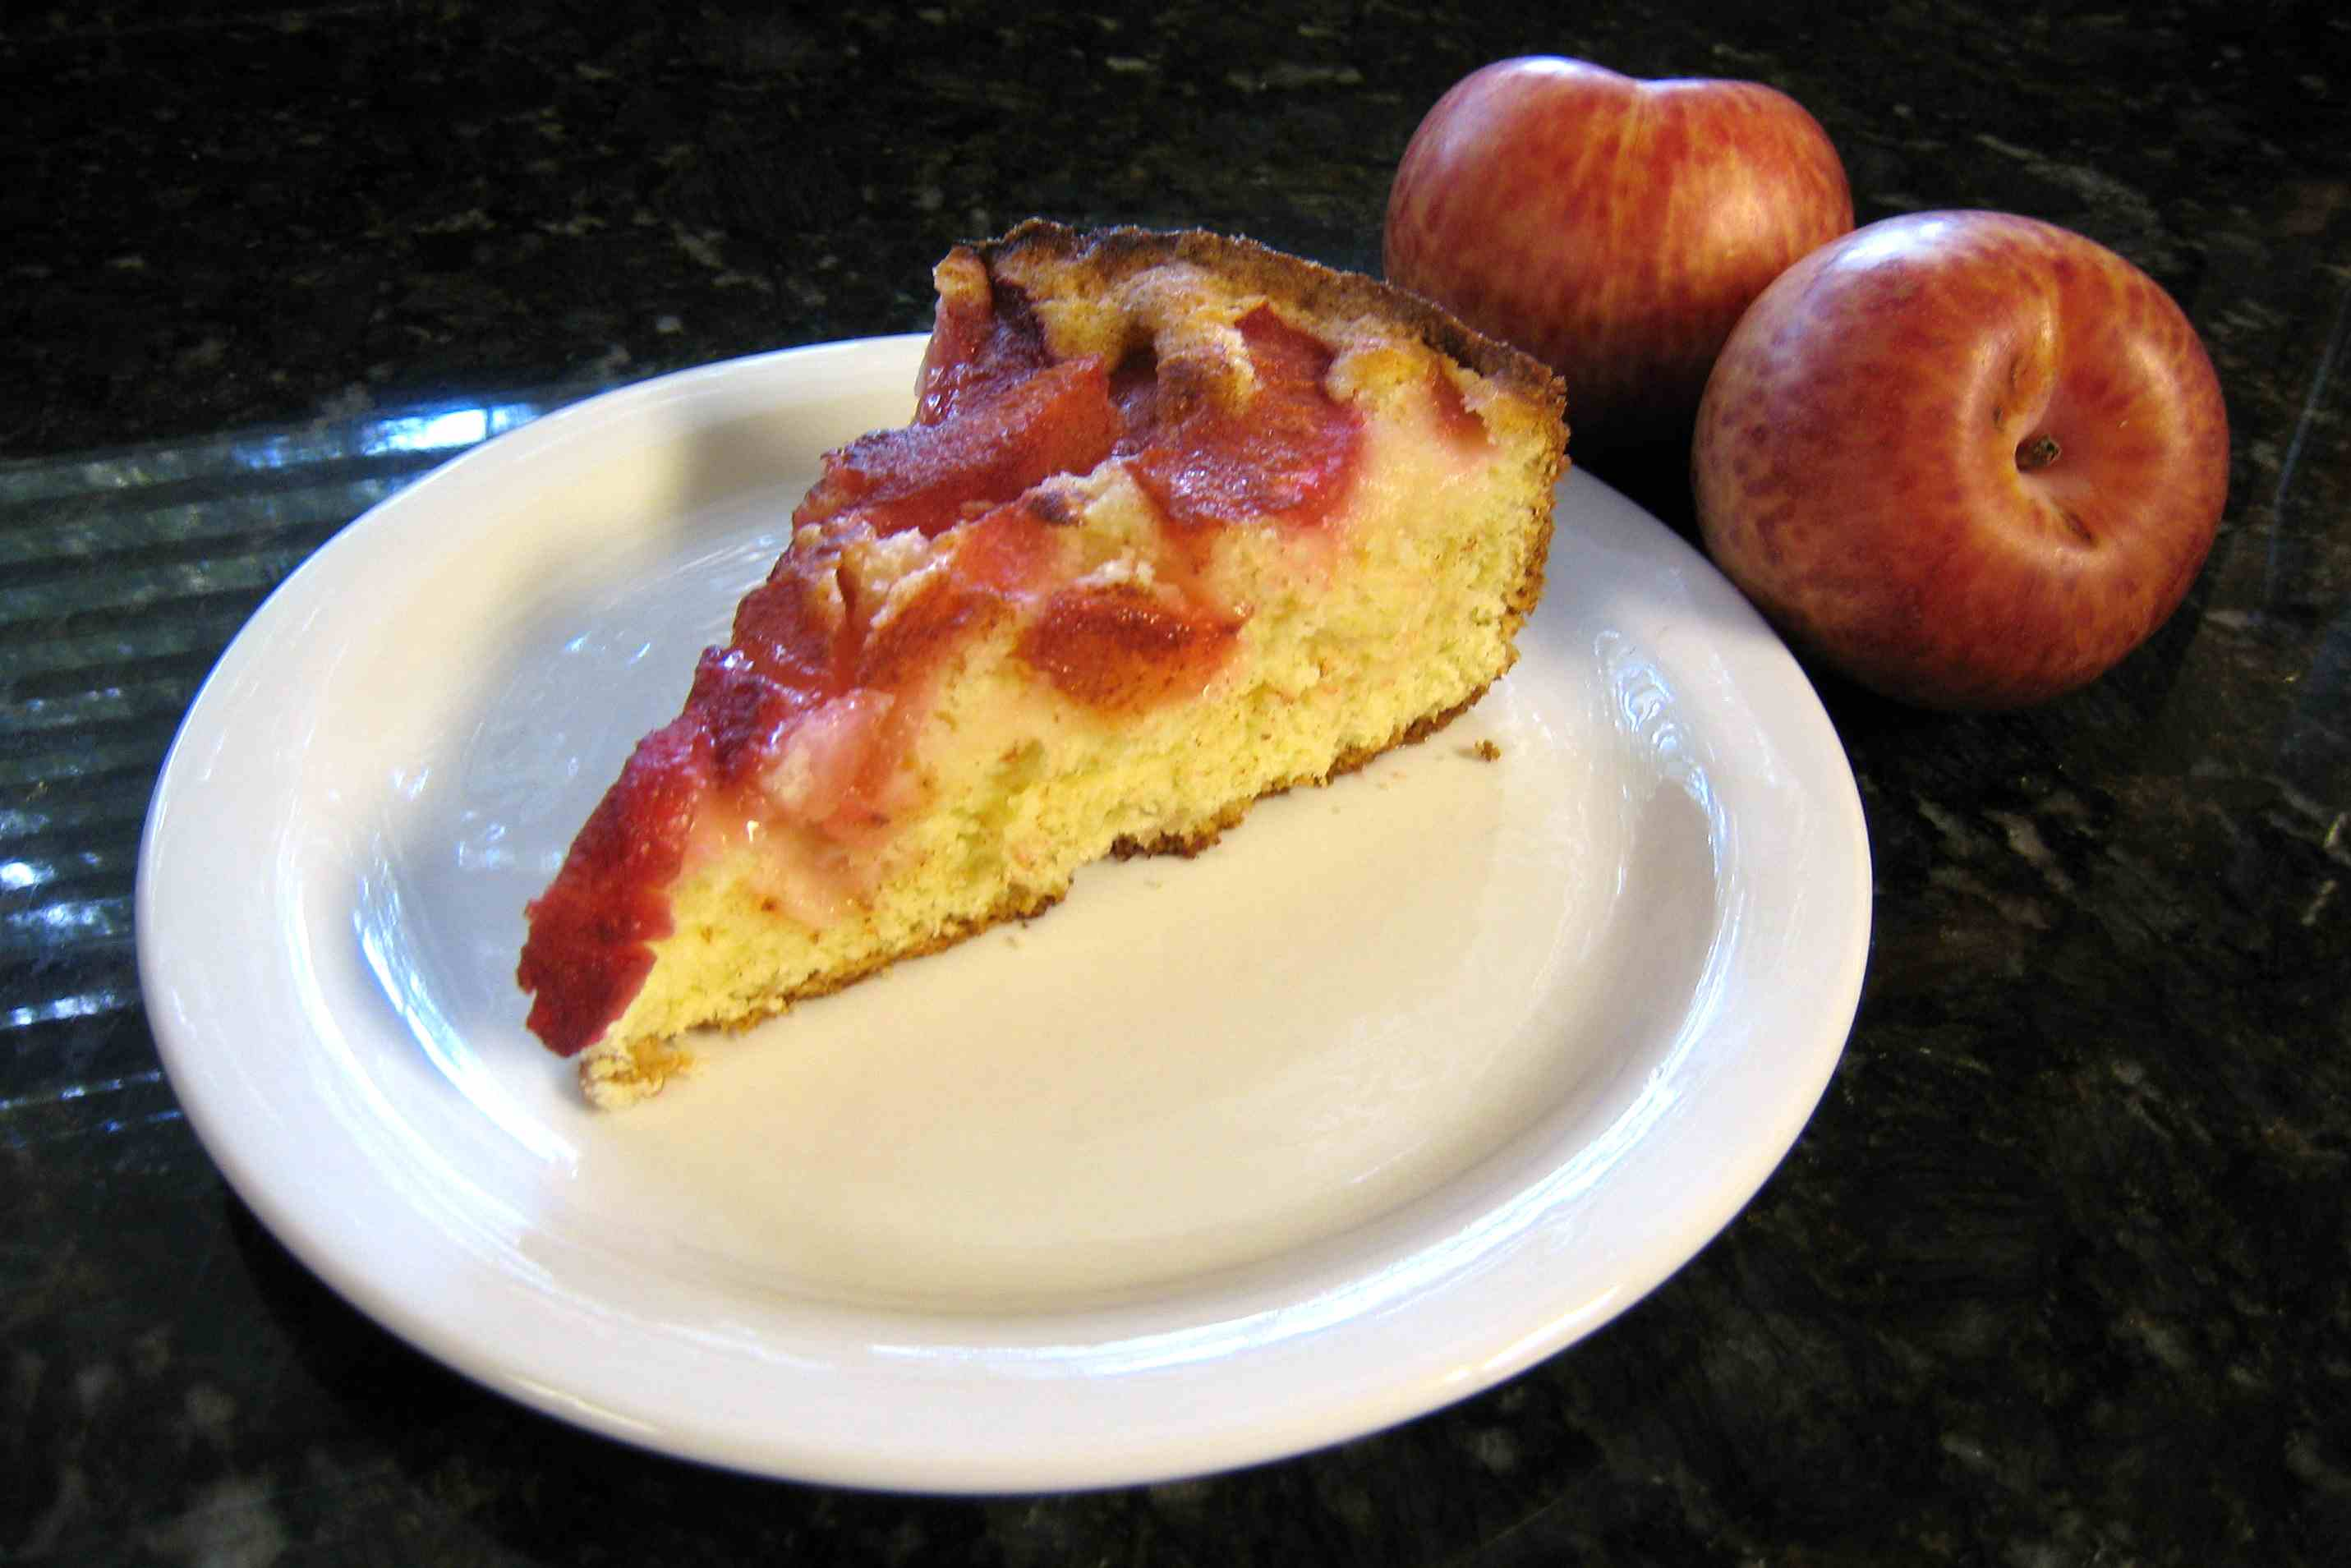 A slice of plum cake with fresh fruit